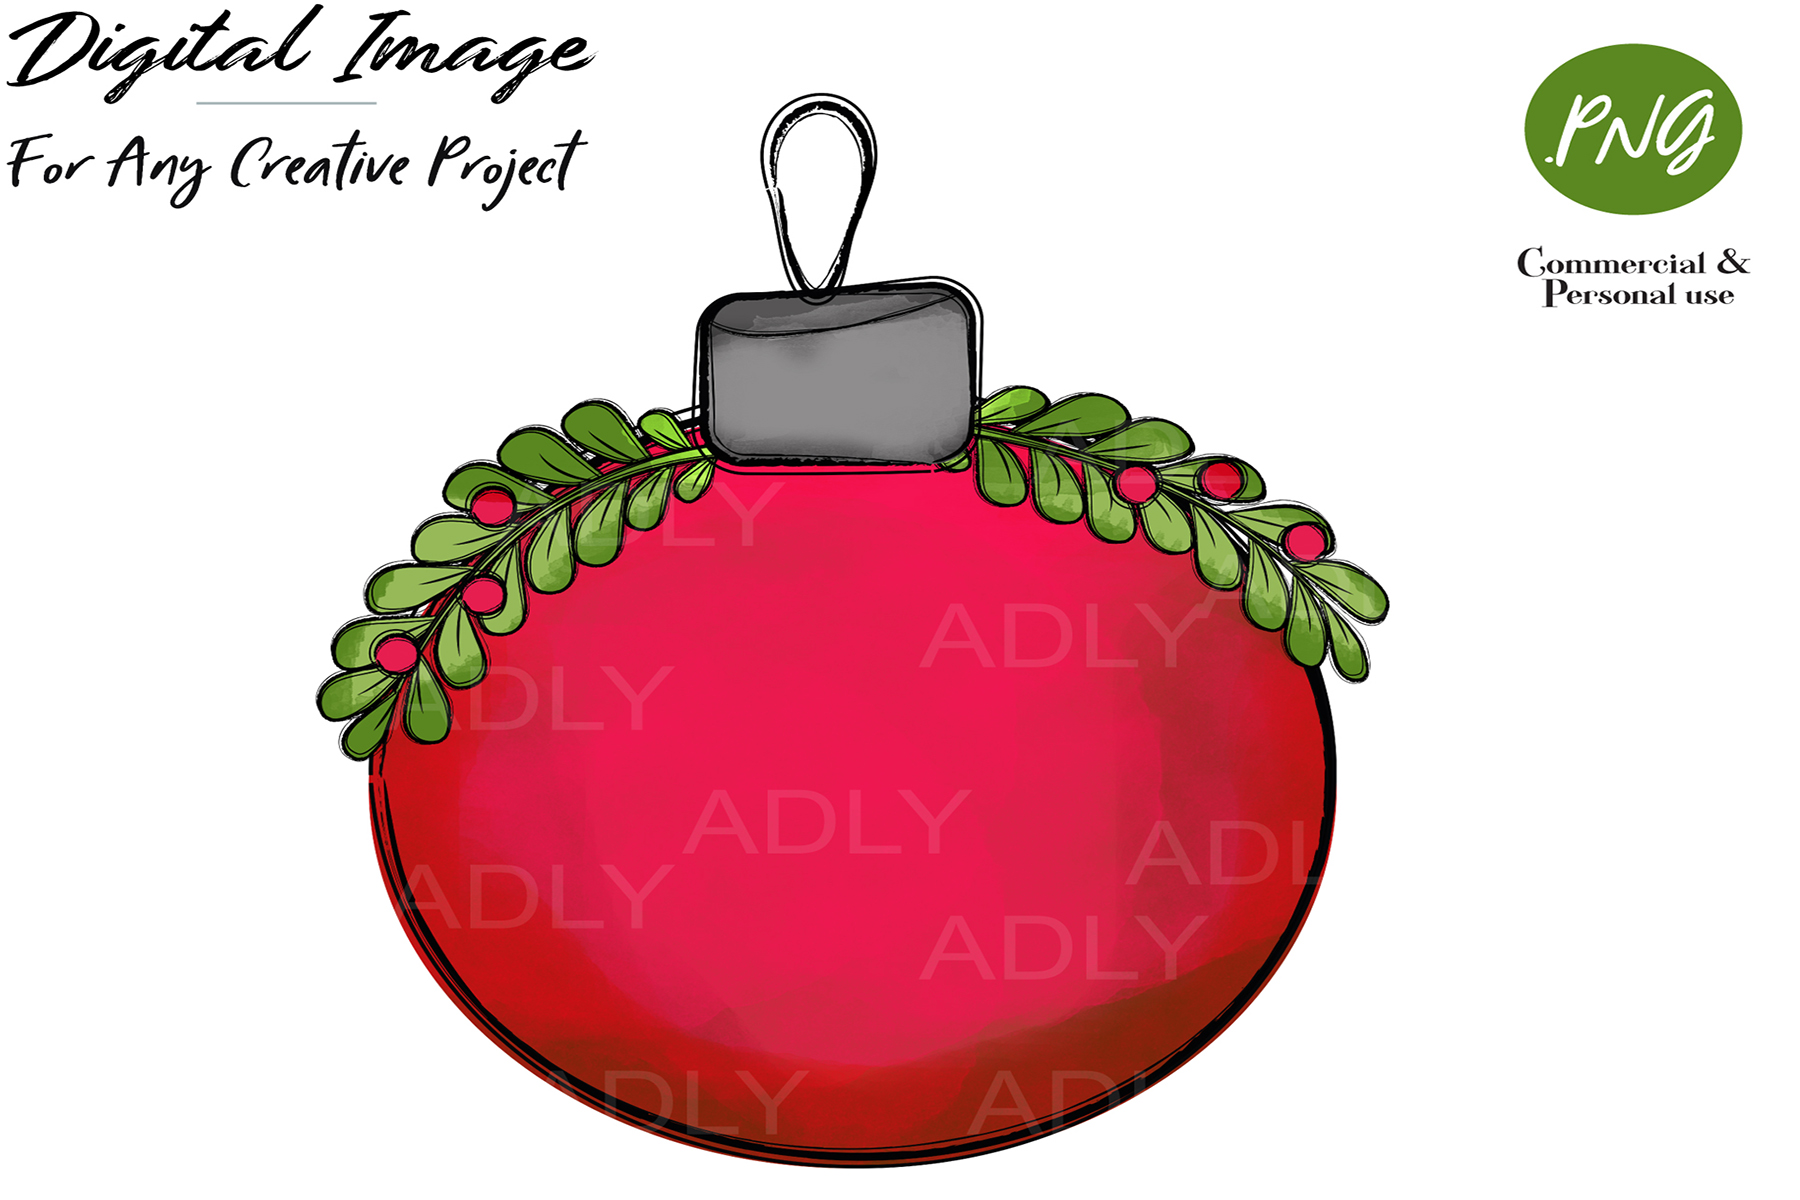 Download Free Red Christmas Ornament Ball Clipart Graphic By Adlydigital for Cricut Explore, Silhouette and other cutting machines.